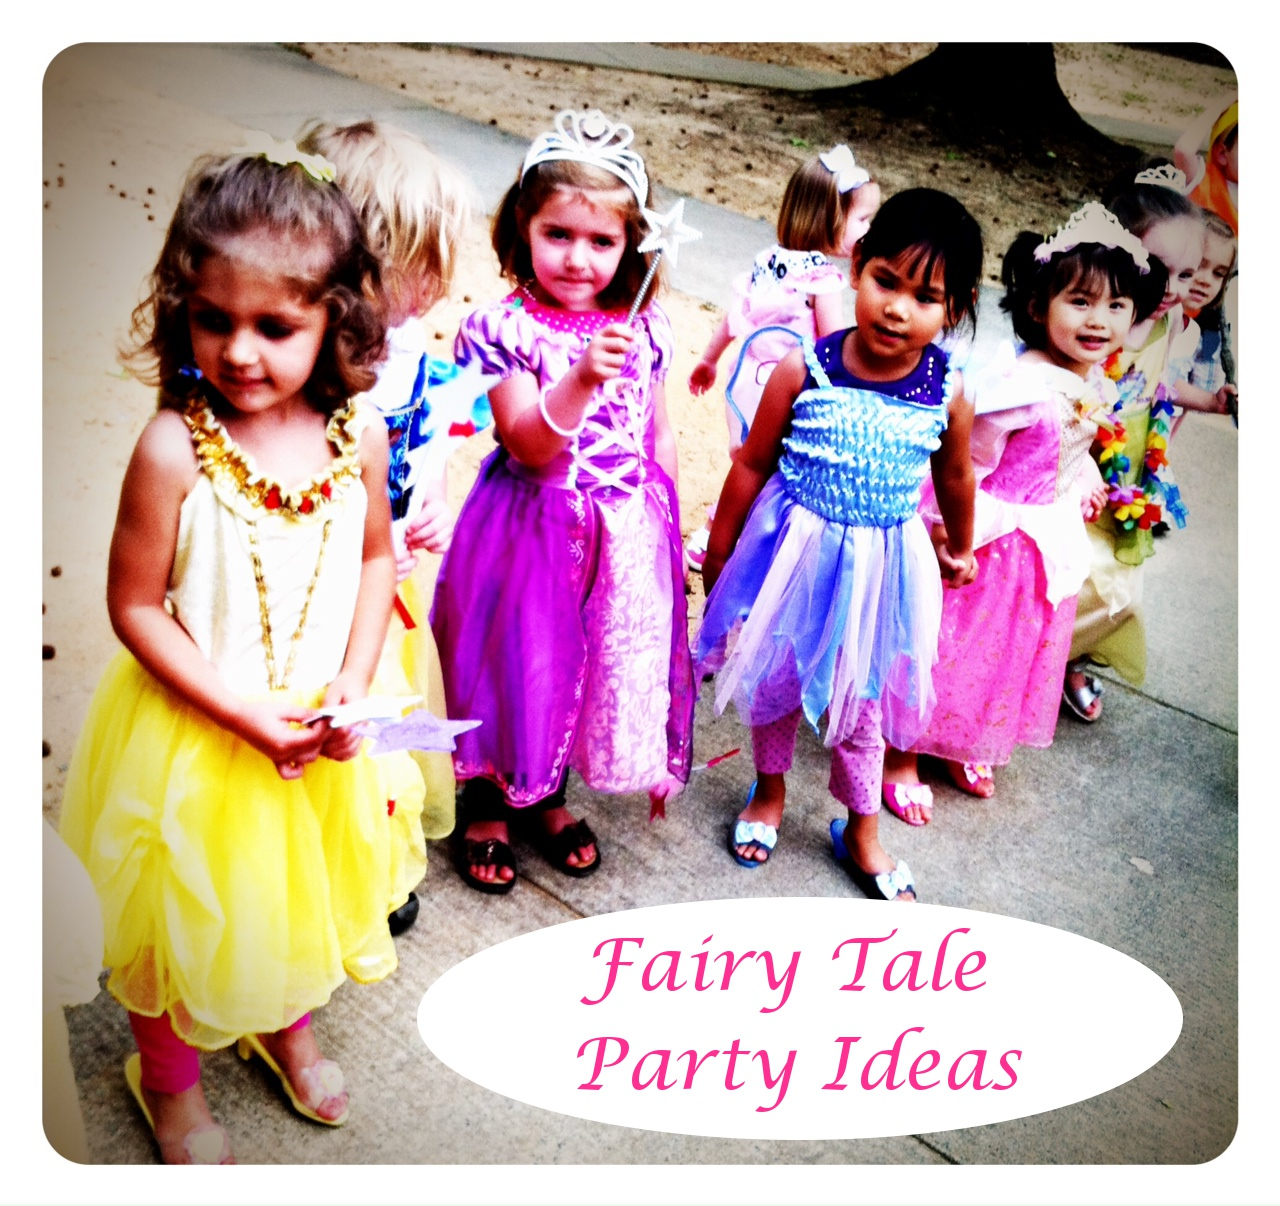 a fairy tale playdate activities and food ideas forks and folly. Black Bedroom Furniture Sets. Home Design Ideas